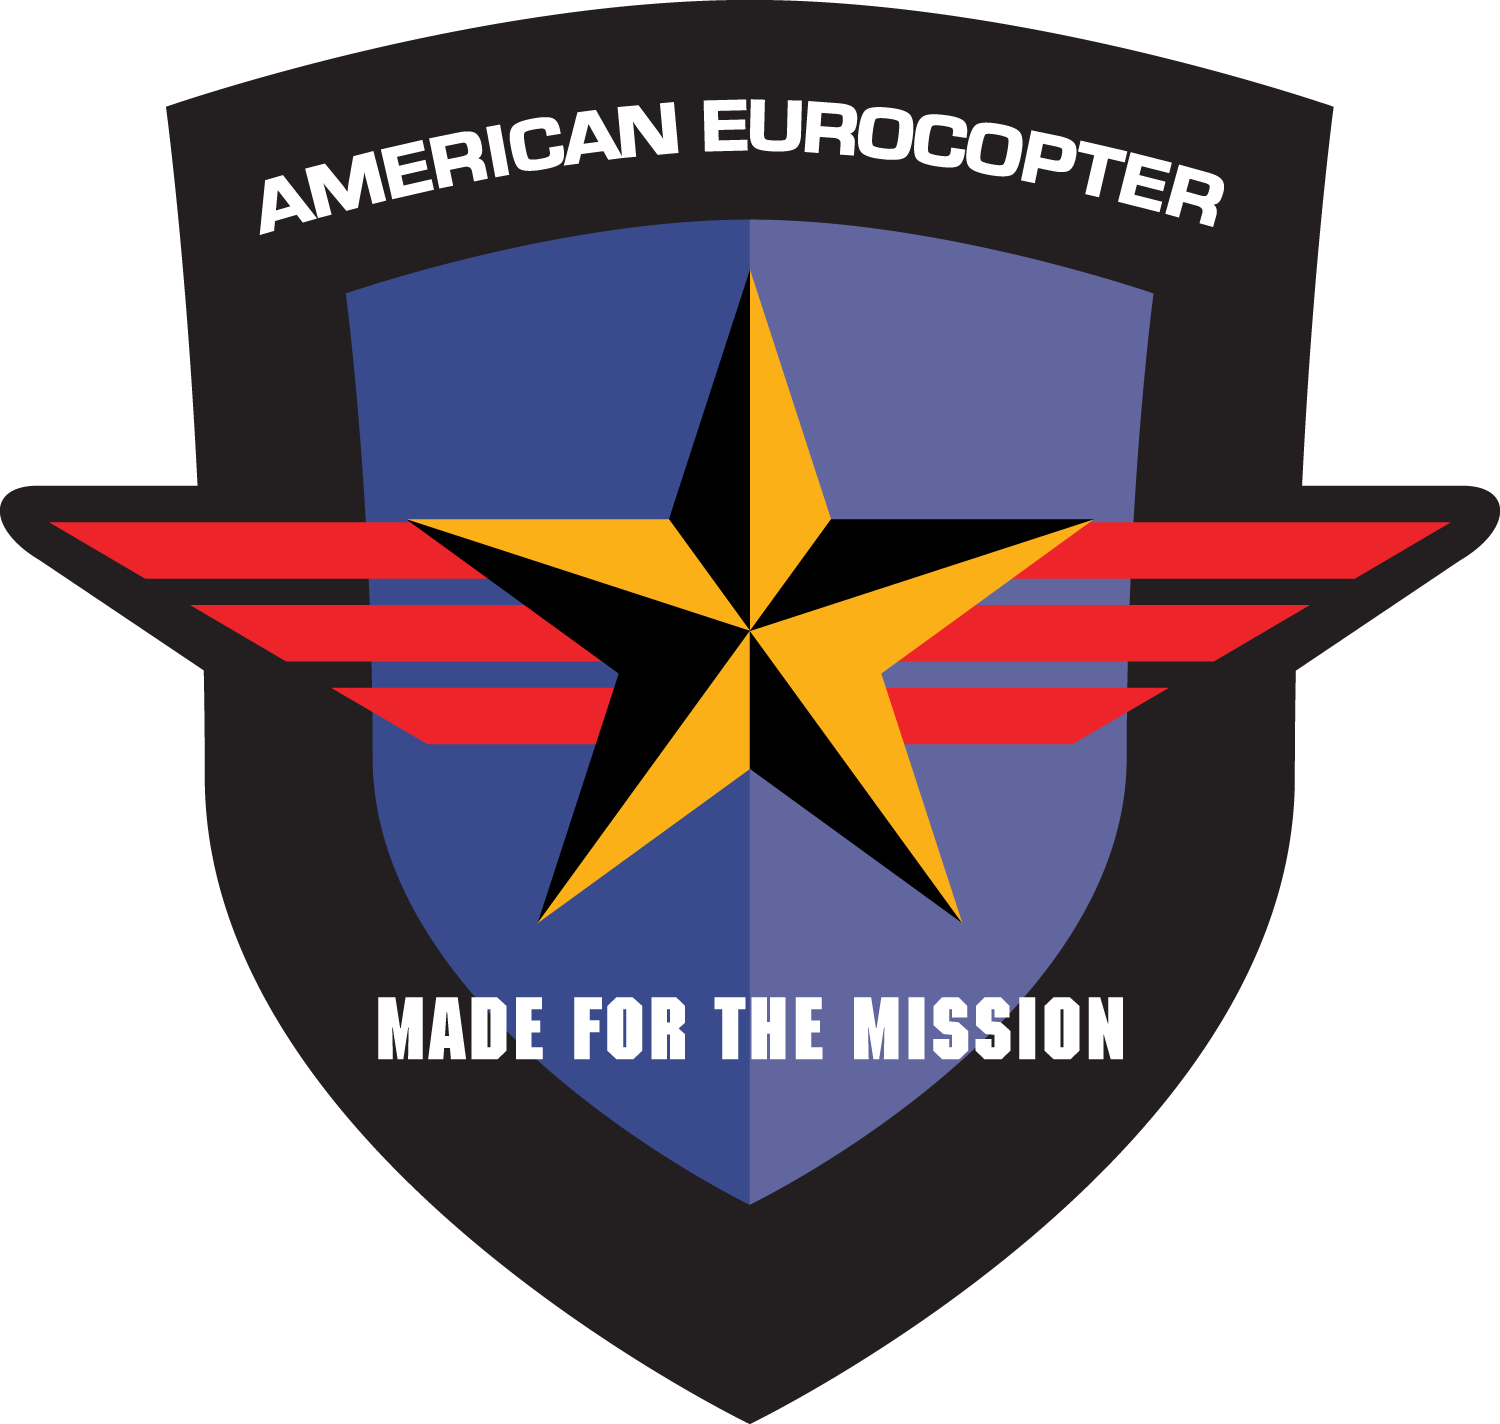 American Eurocopter Corporation